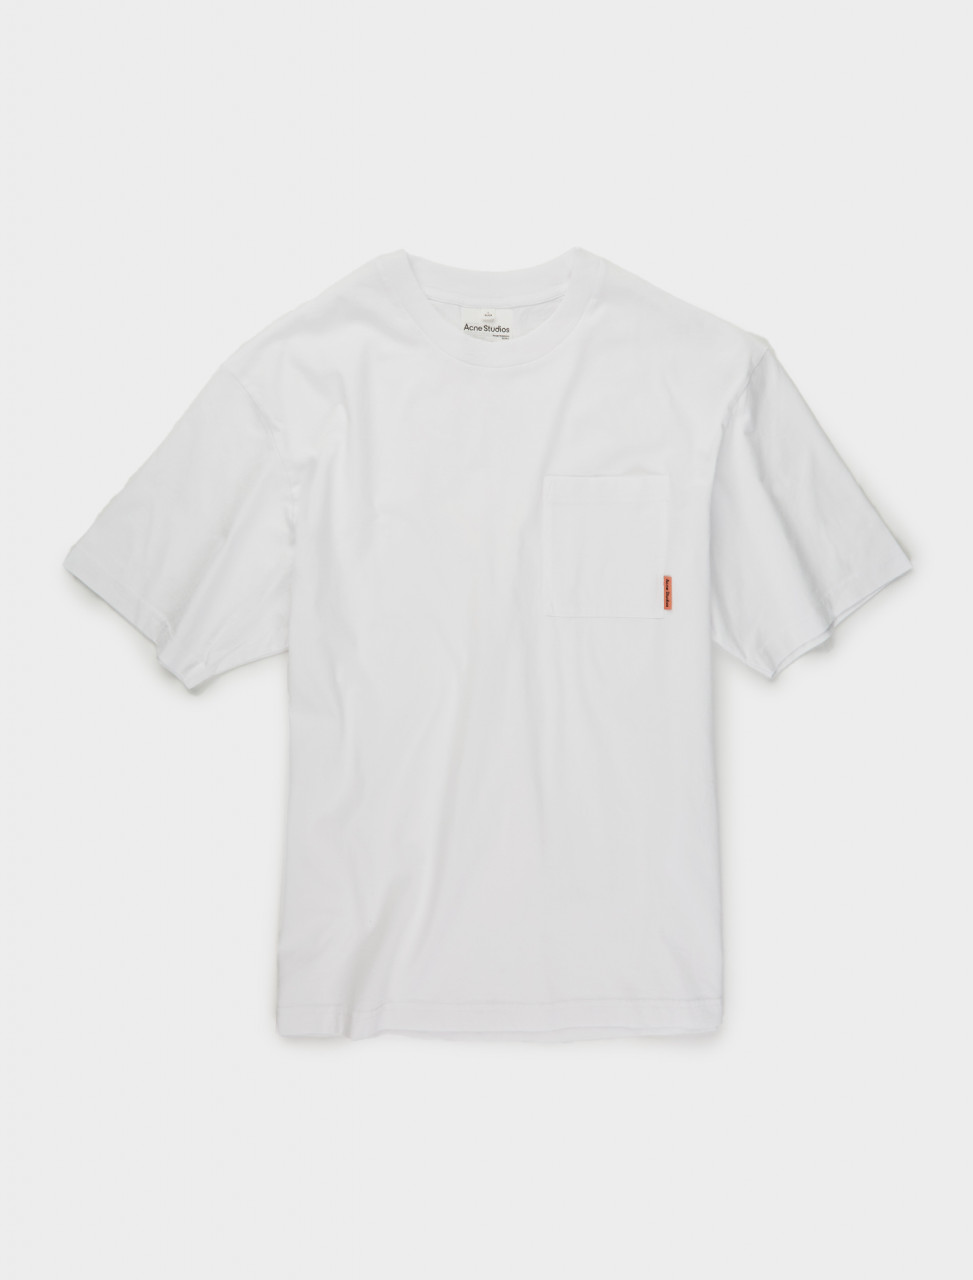 110-BL0214-183 ACNE STUDIOS PATCH POCKET TSHIRT IN OPTIC WHITE